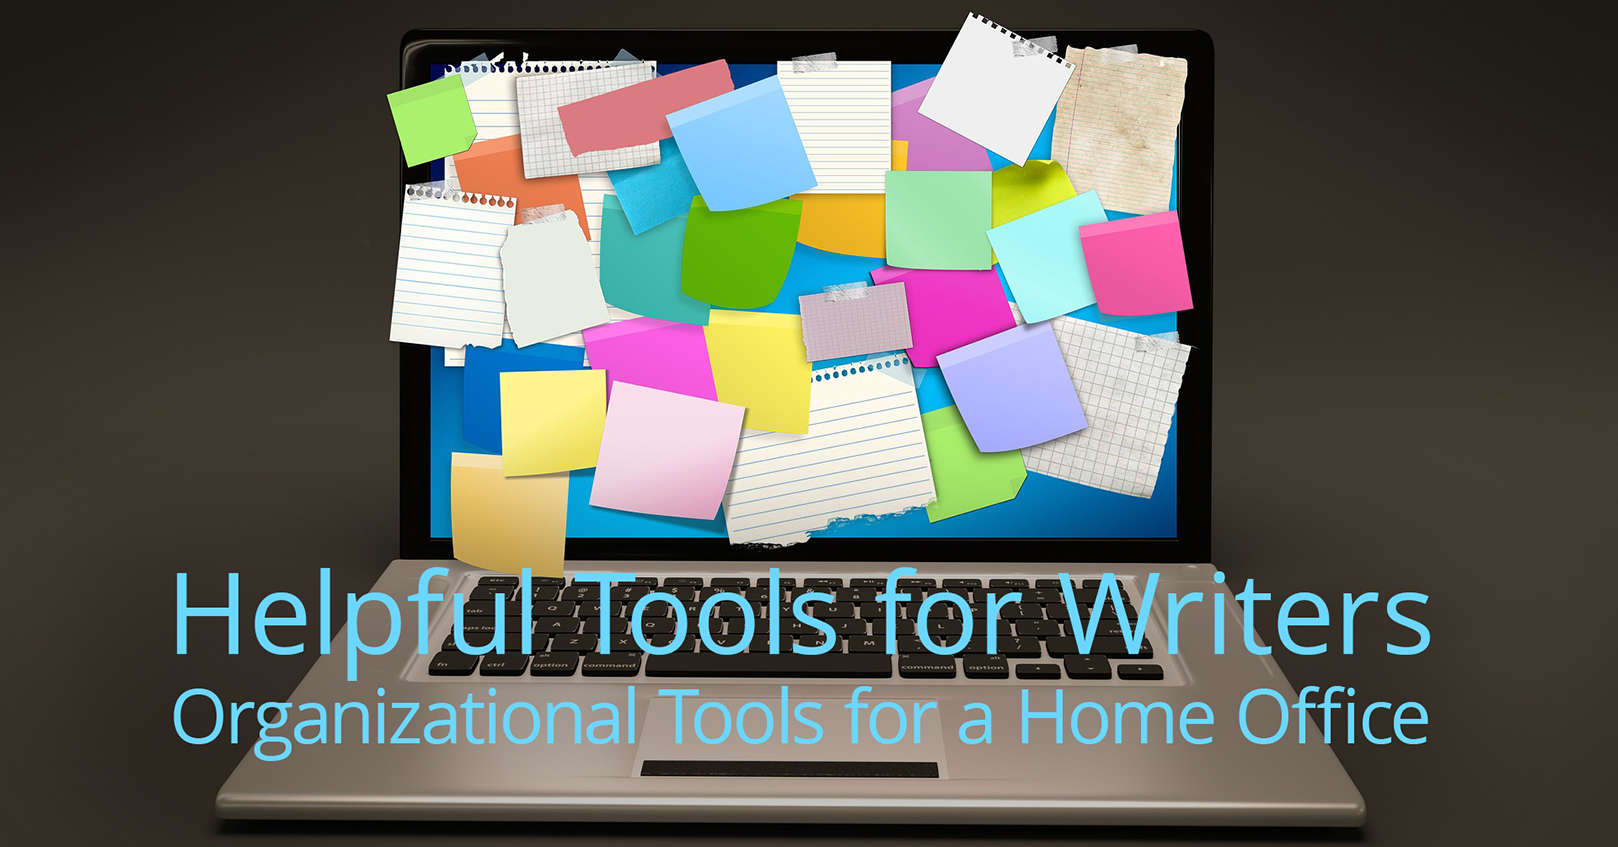 Organizational Tools for a Home Office